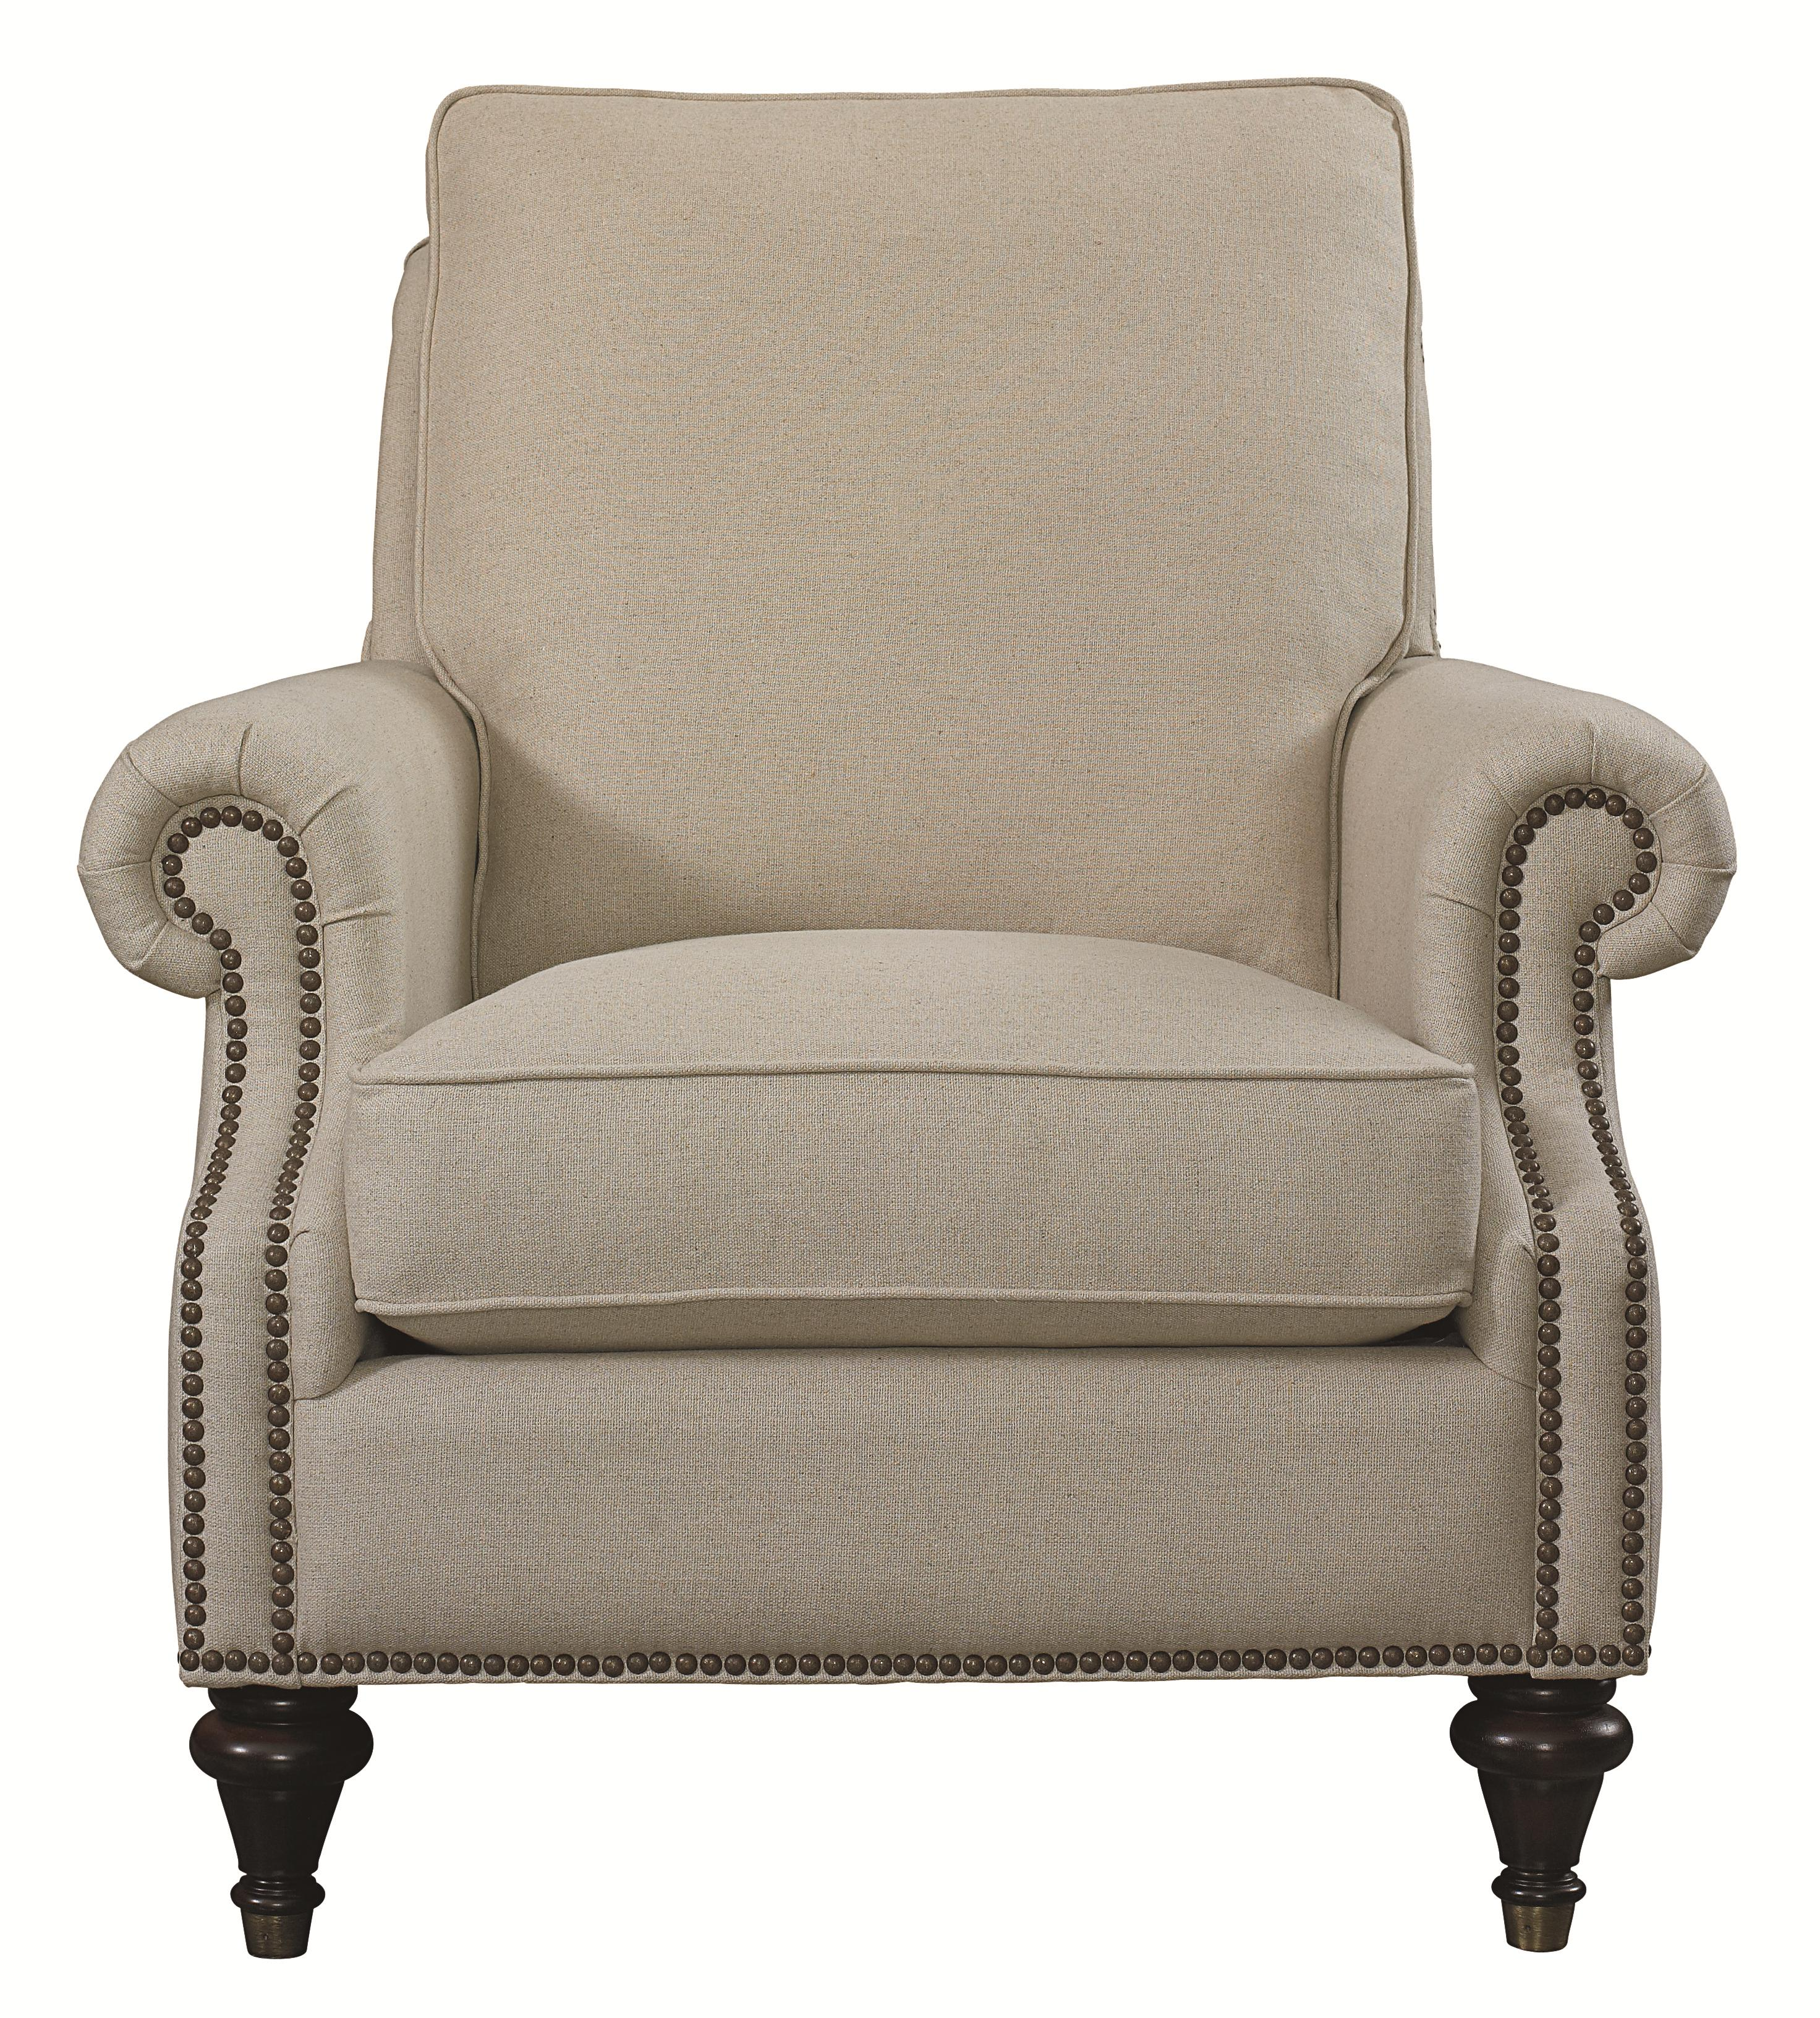 Bassett Accent Chairs by Bassett Oxford Accent Chair - Item Number: 1494-02